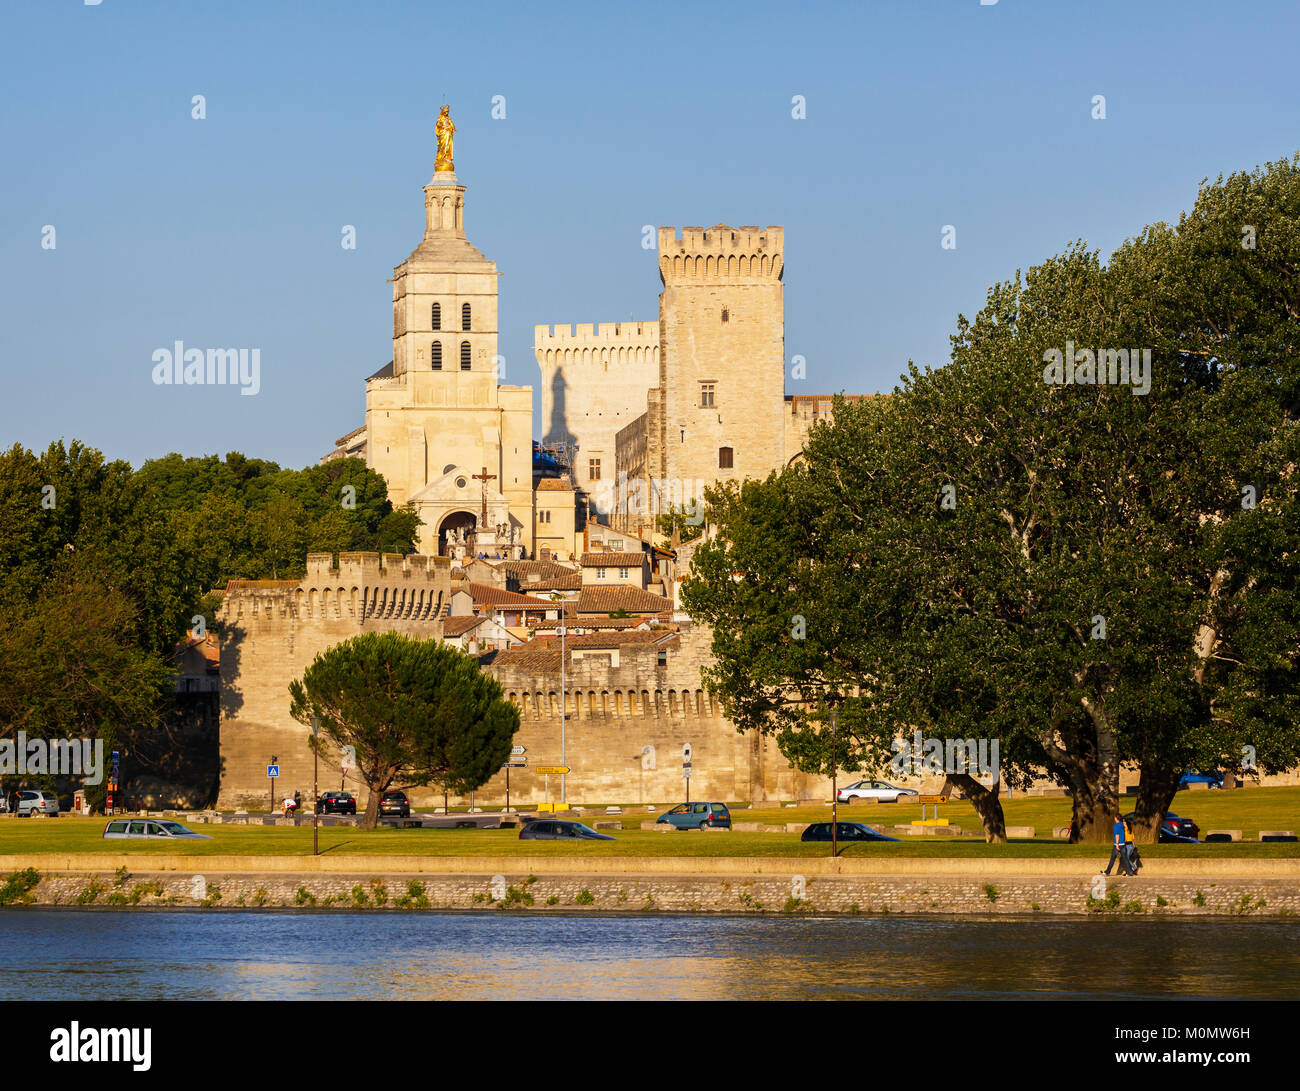 Avignon, Provence-Alpes-Côte d'Azur, France.  Palais des Papes.  Palace of the Popes seen across the Rhône - Stock Image